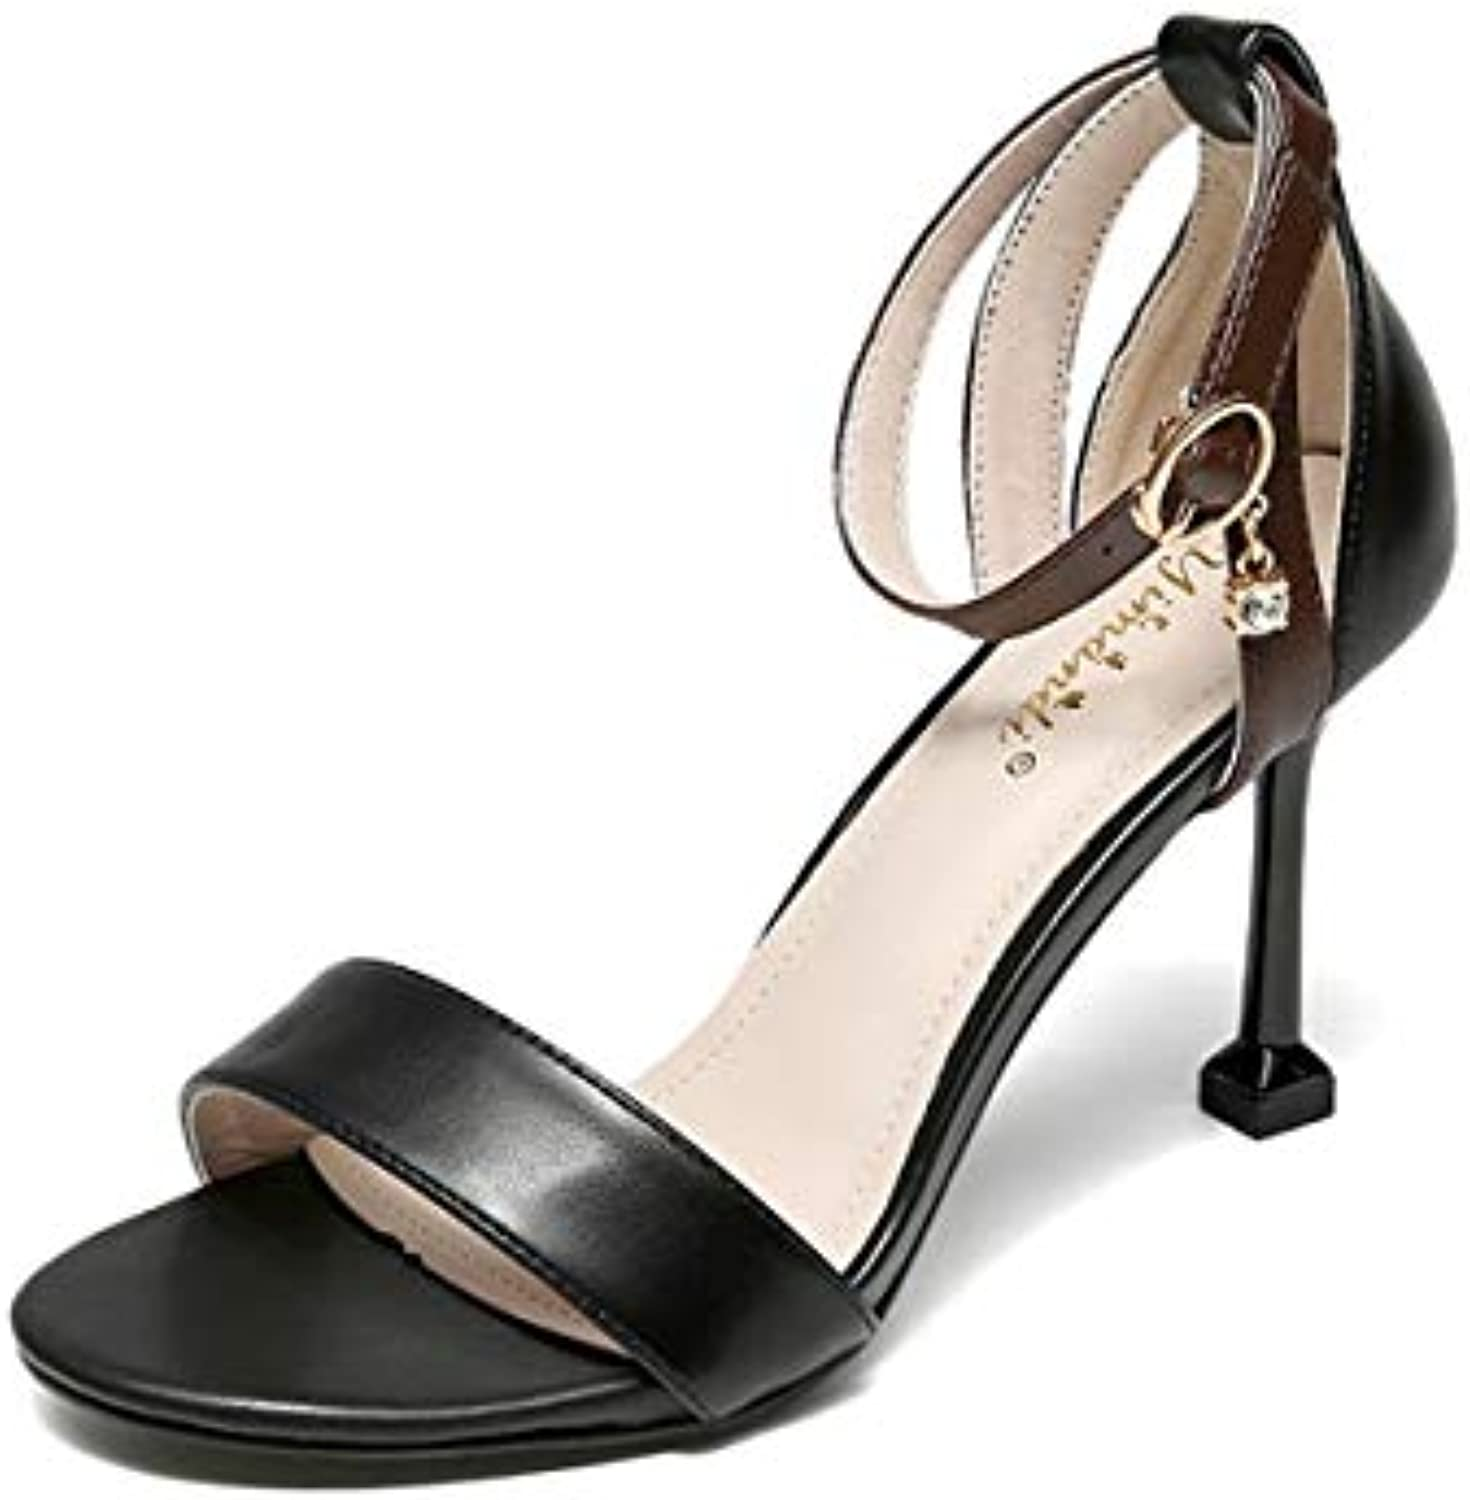 KOKQSX-High heels wild thin low high 7CM 7CM 7CM 37 nero | Scelta Internazionale